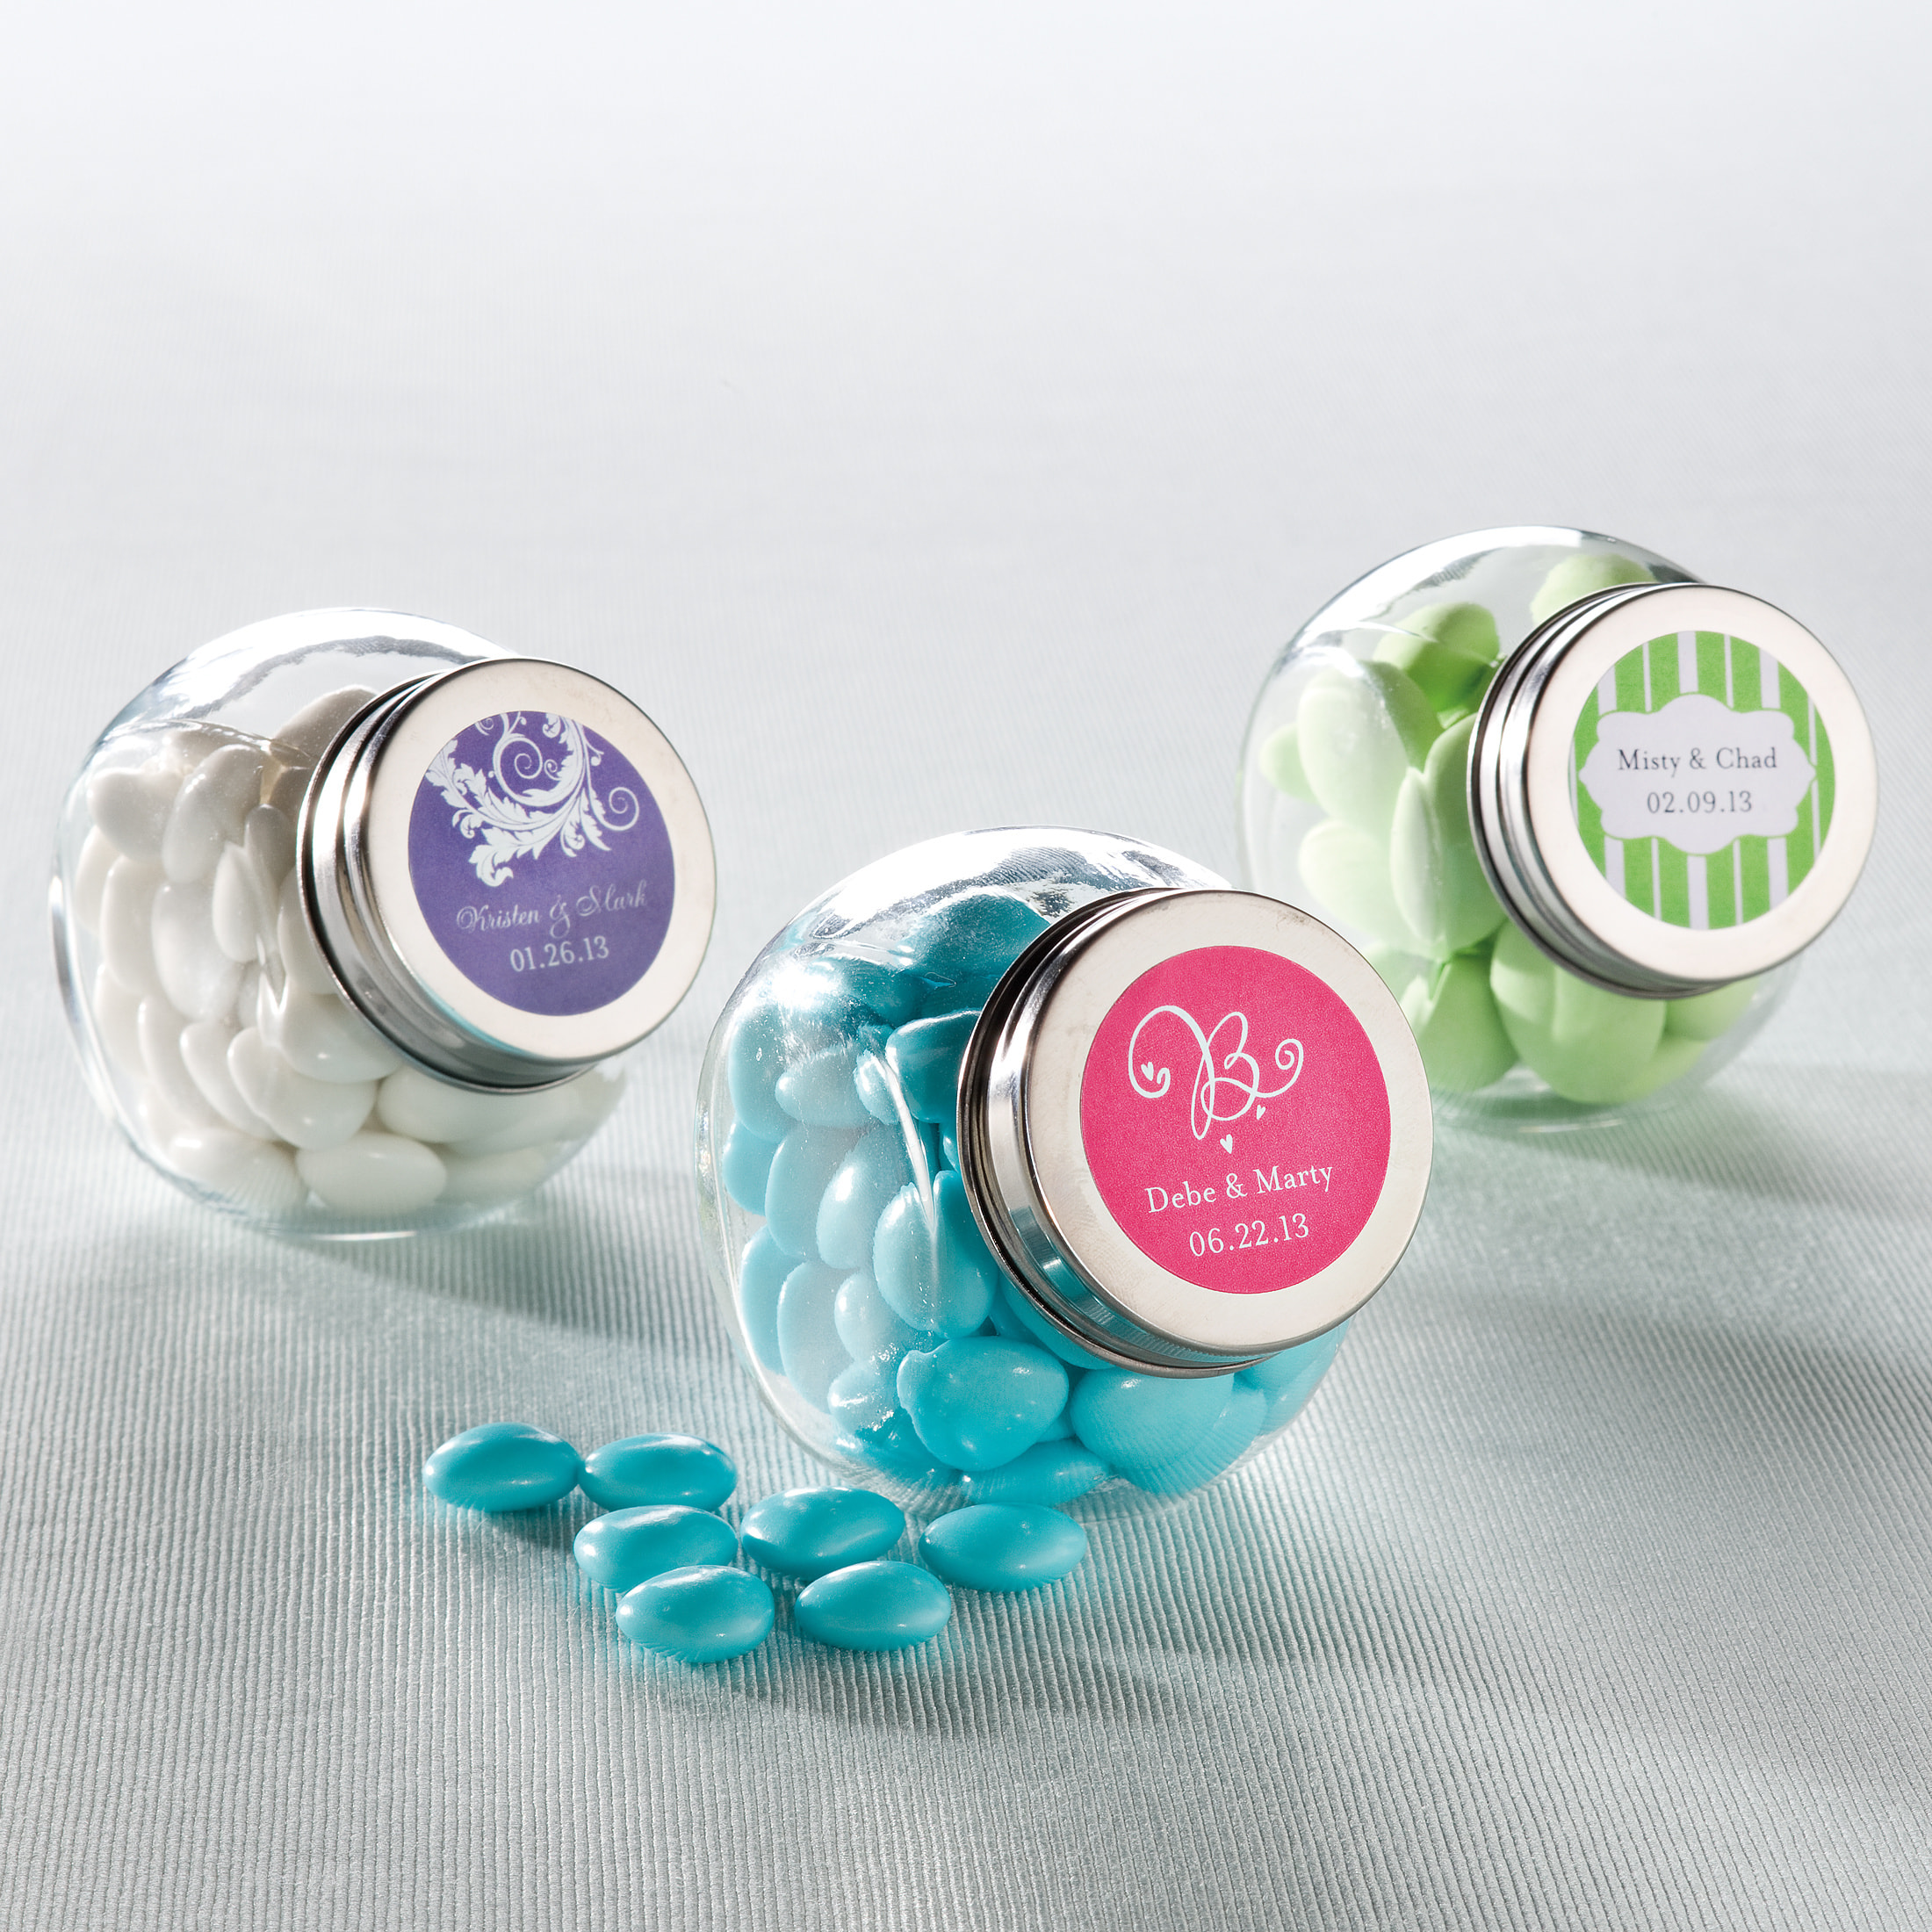 candy jar favor with personalized label wedding favors